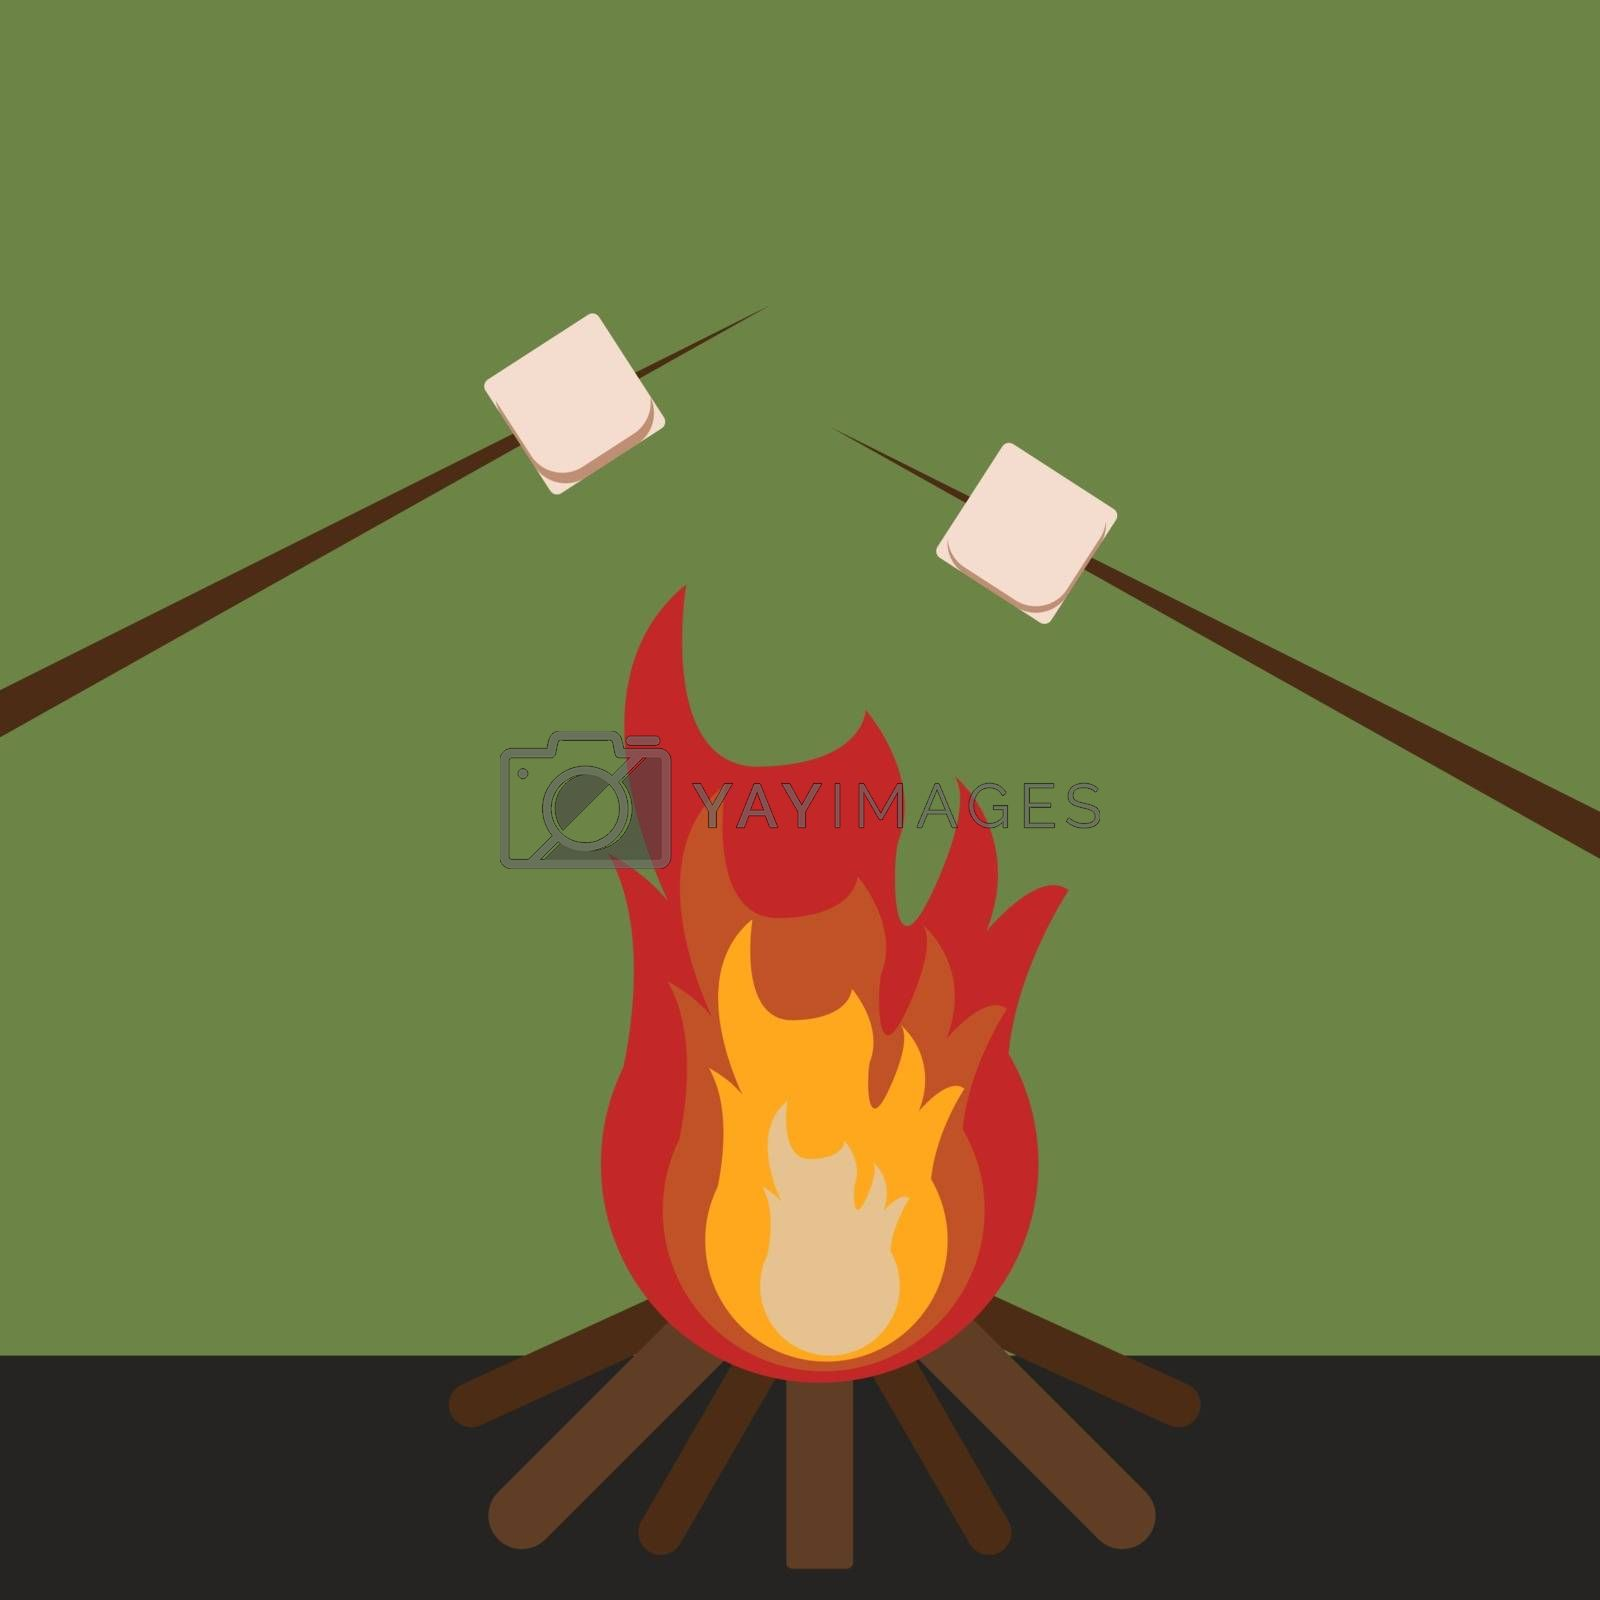 Fire in woods, illustration, vector on white background.